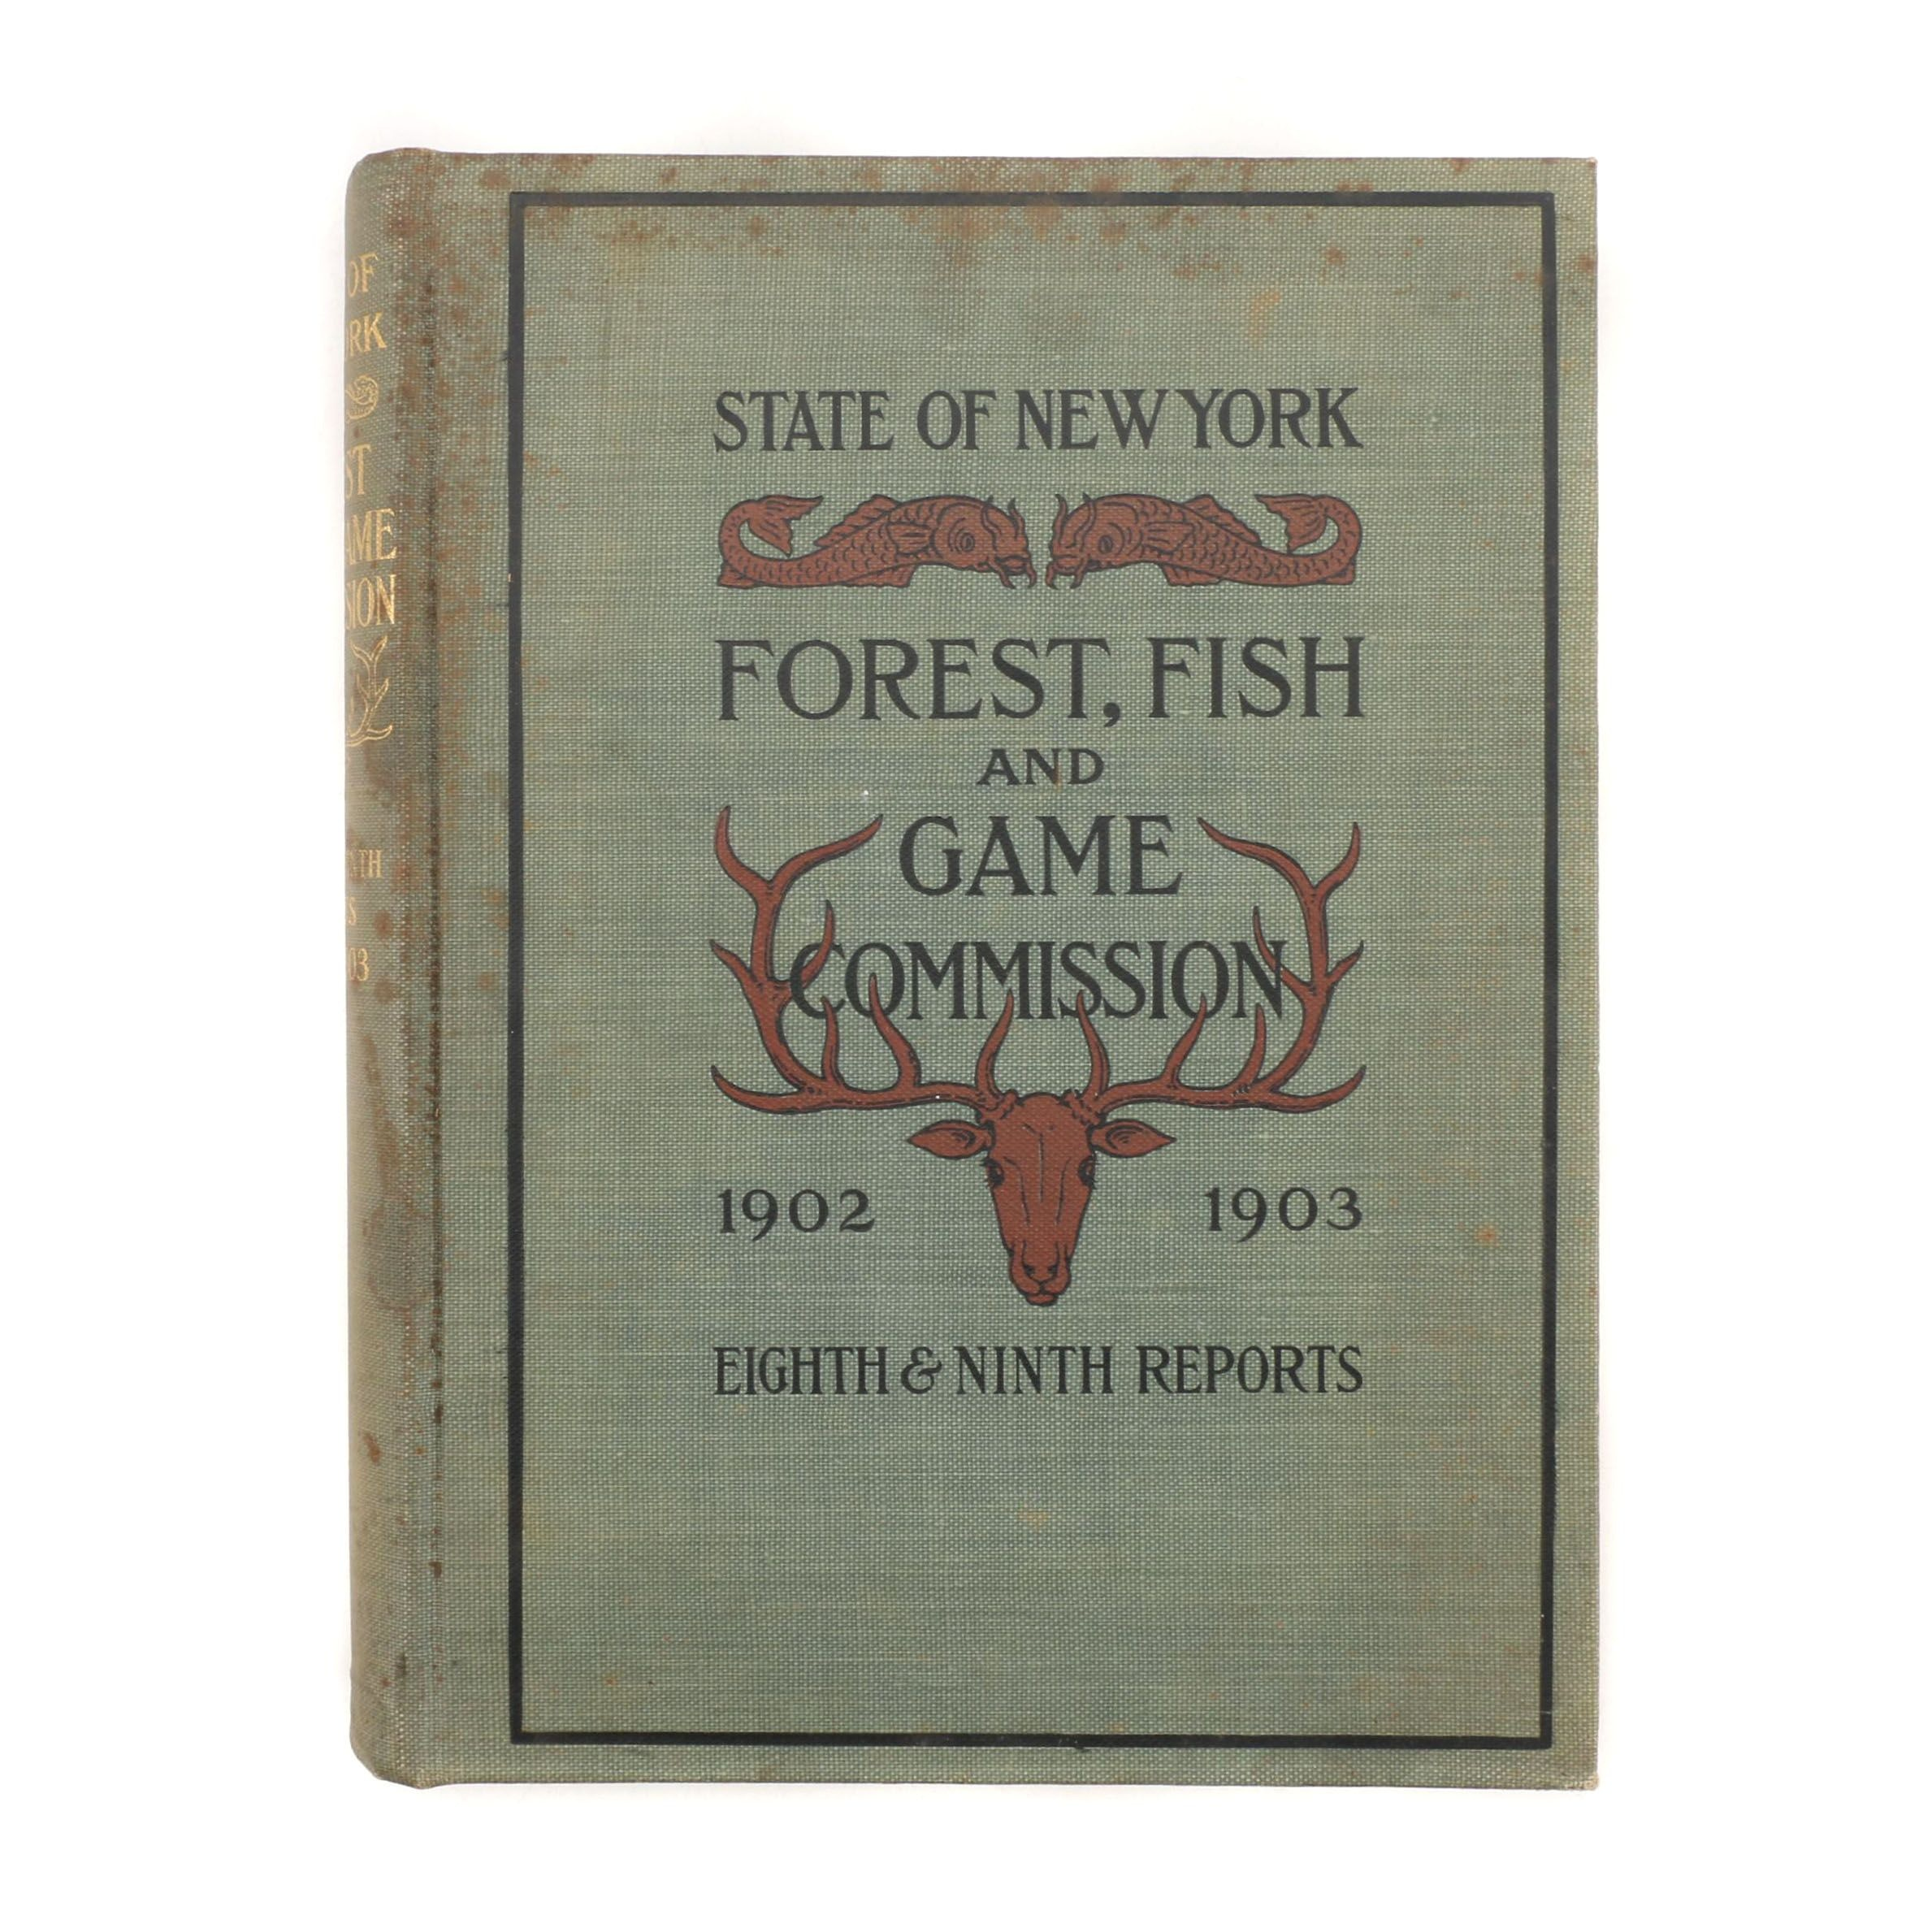 1902-1903 New York Forest, Fish, and Game Commission Report